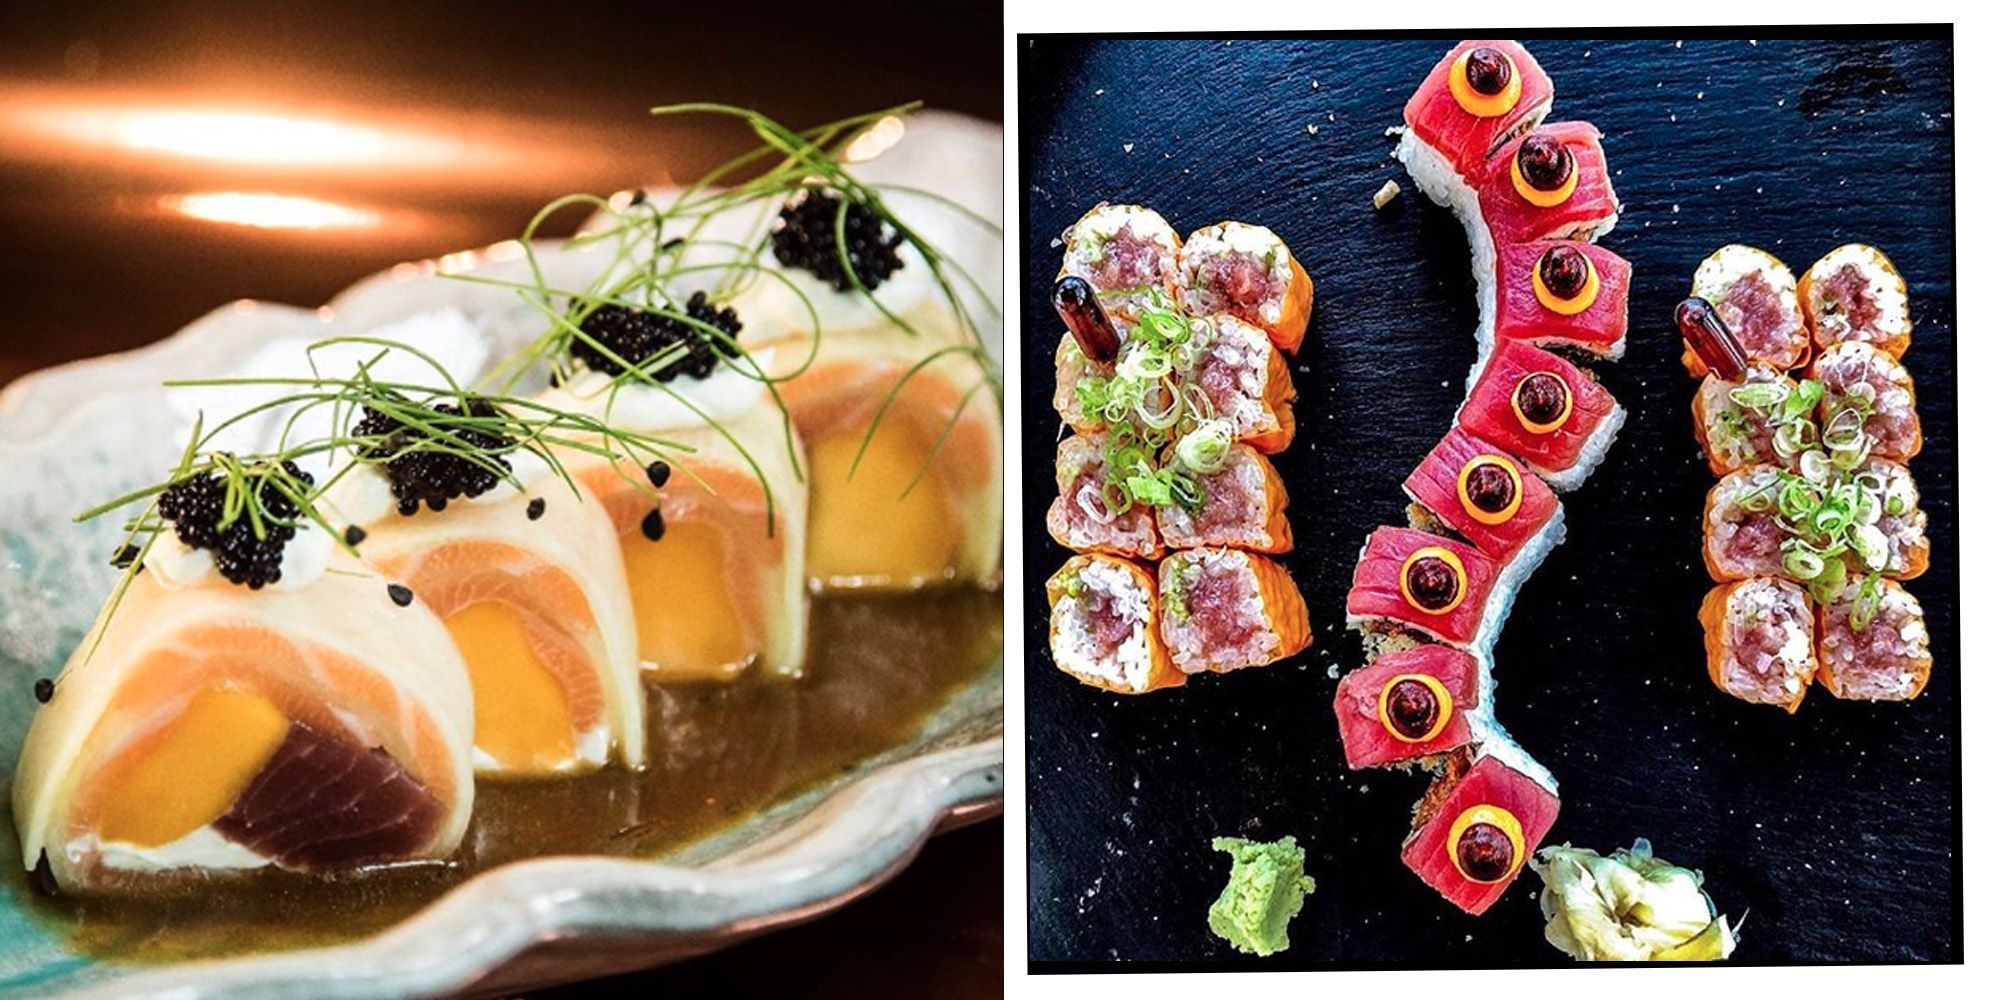 15 Of The Best Sushi Restaurants In London That Will Have You Reaching For The Chopsticks